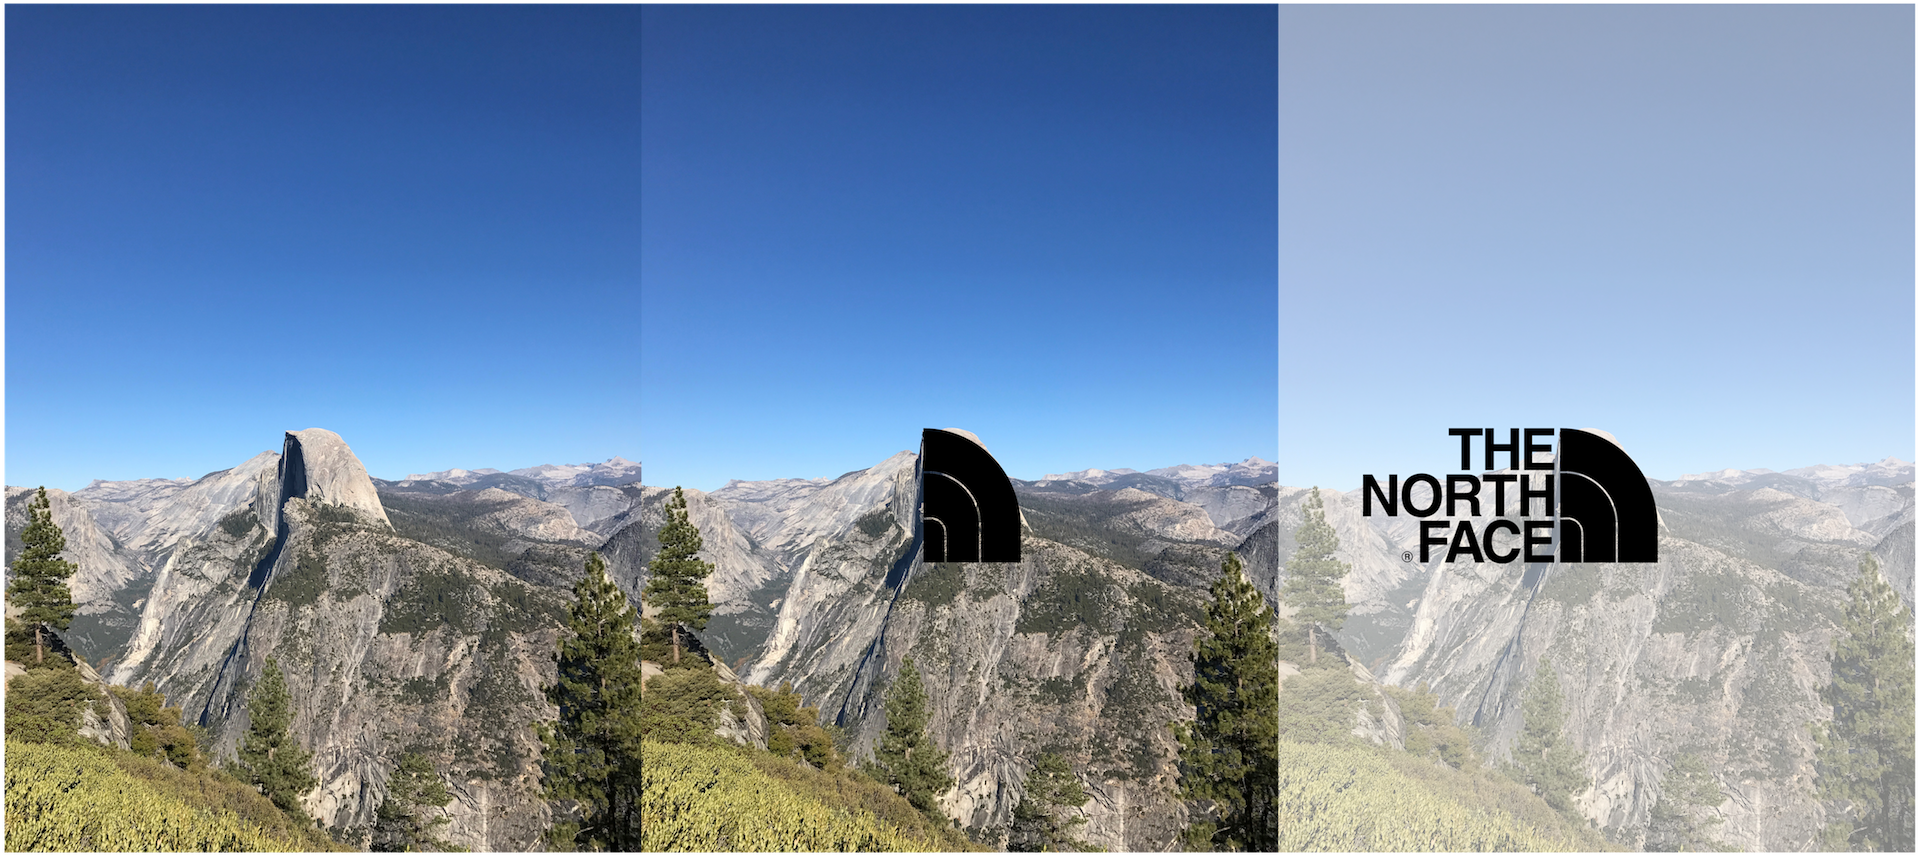 Went to Yosemite National Park this past weekend ….